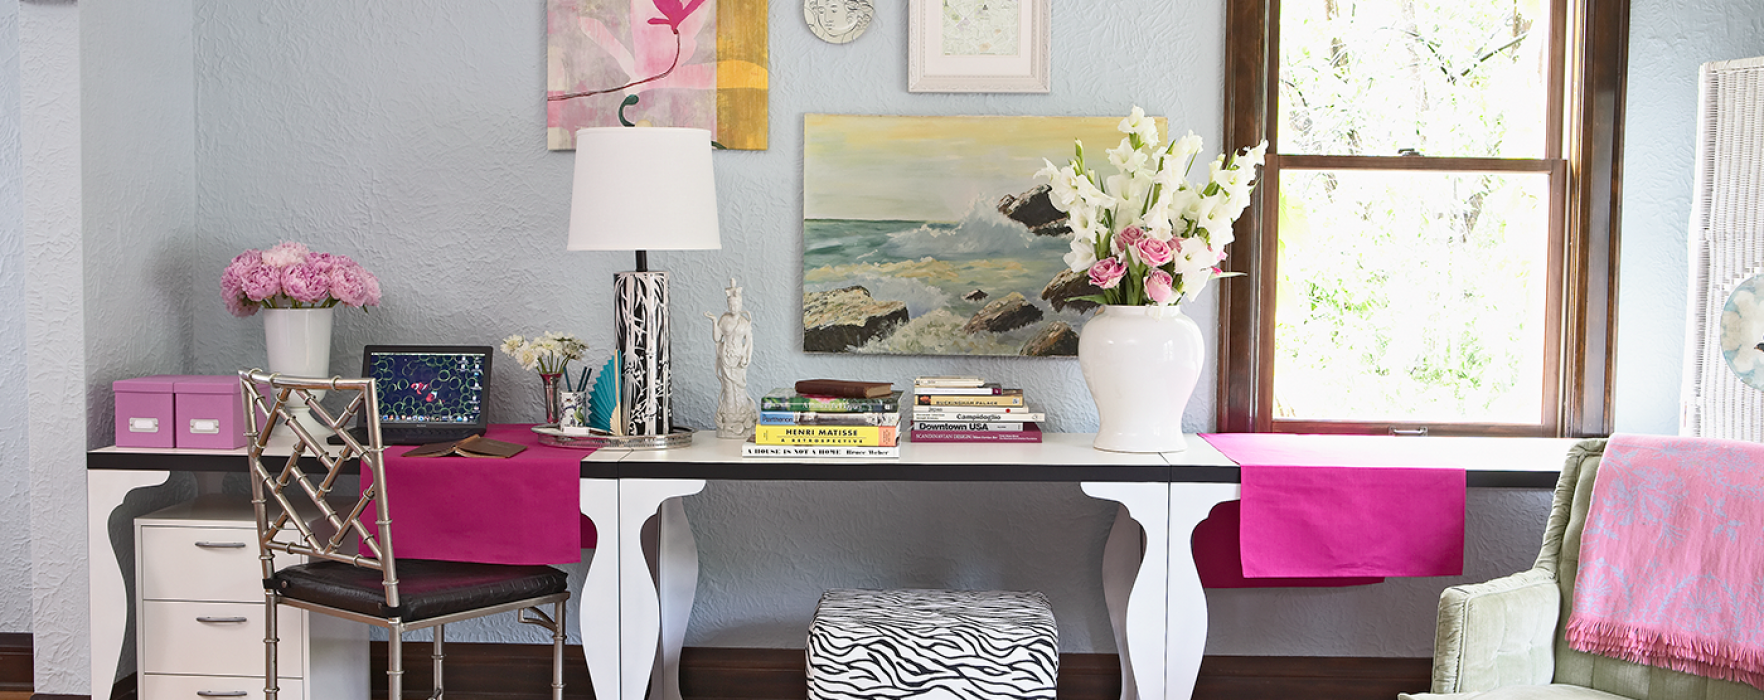 Design a Functional, Attractive Home Office